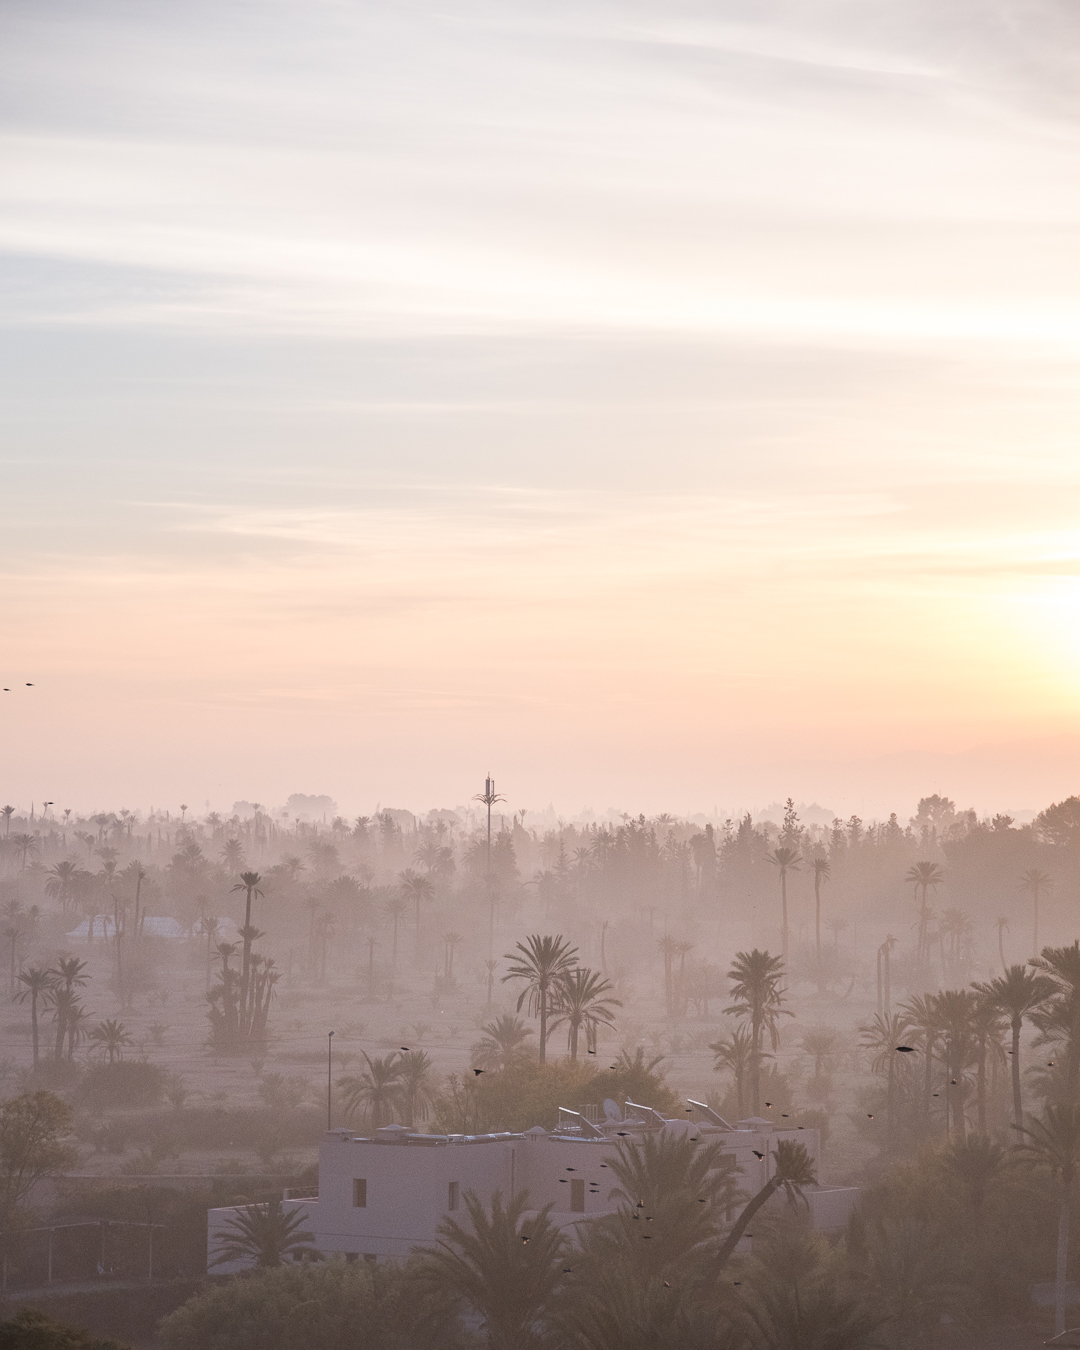 sun rise over marrakesh, as seen from the club med resort